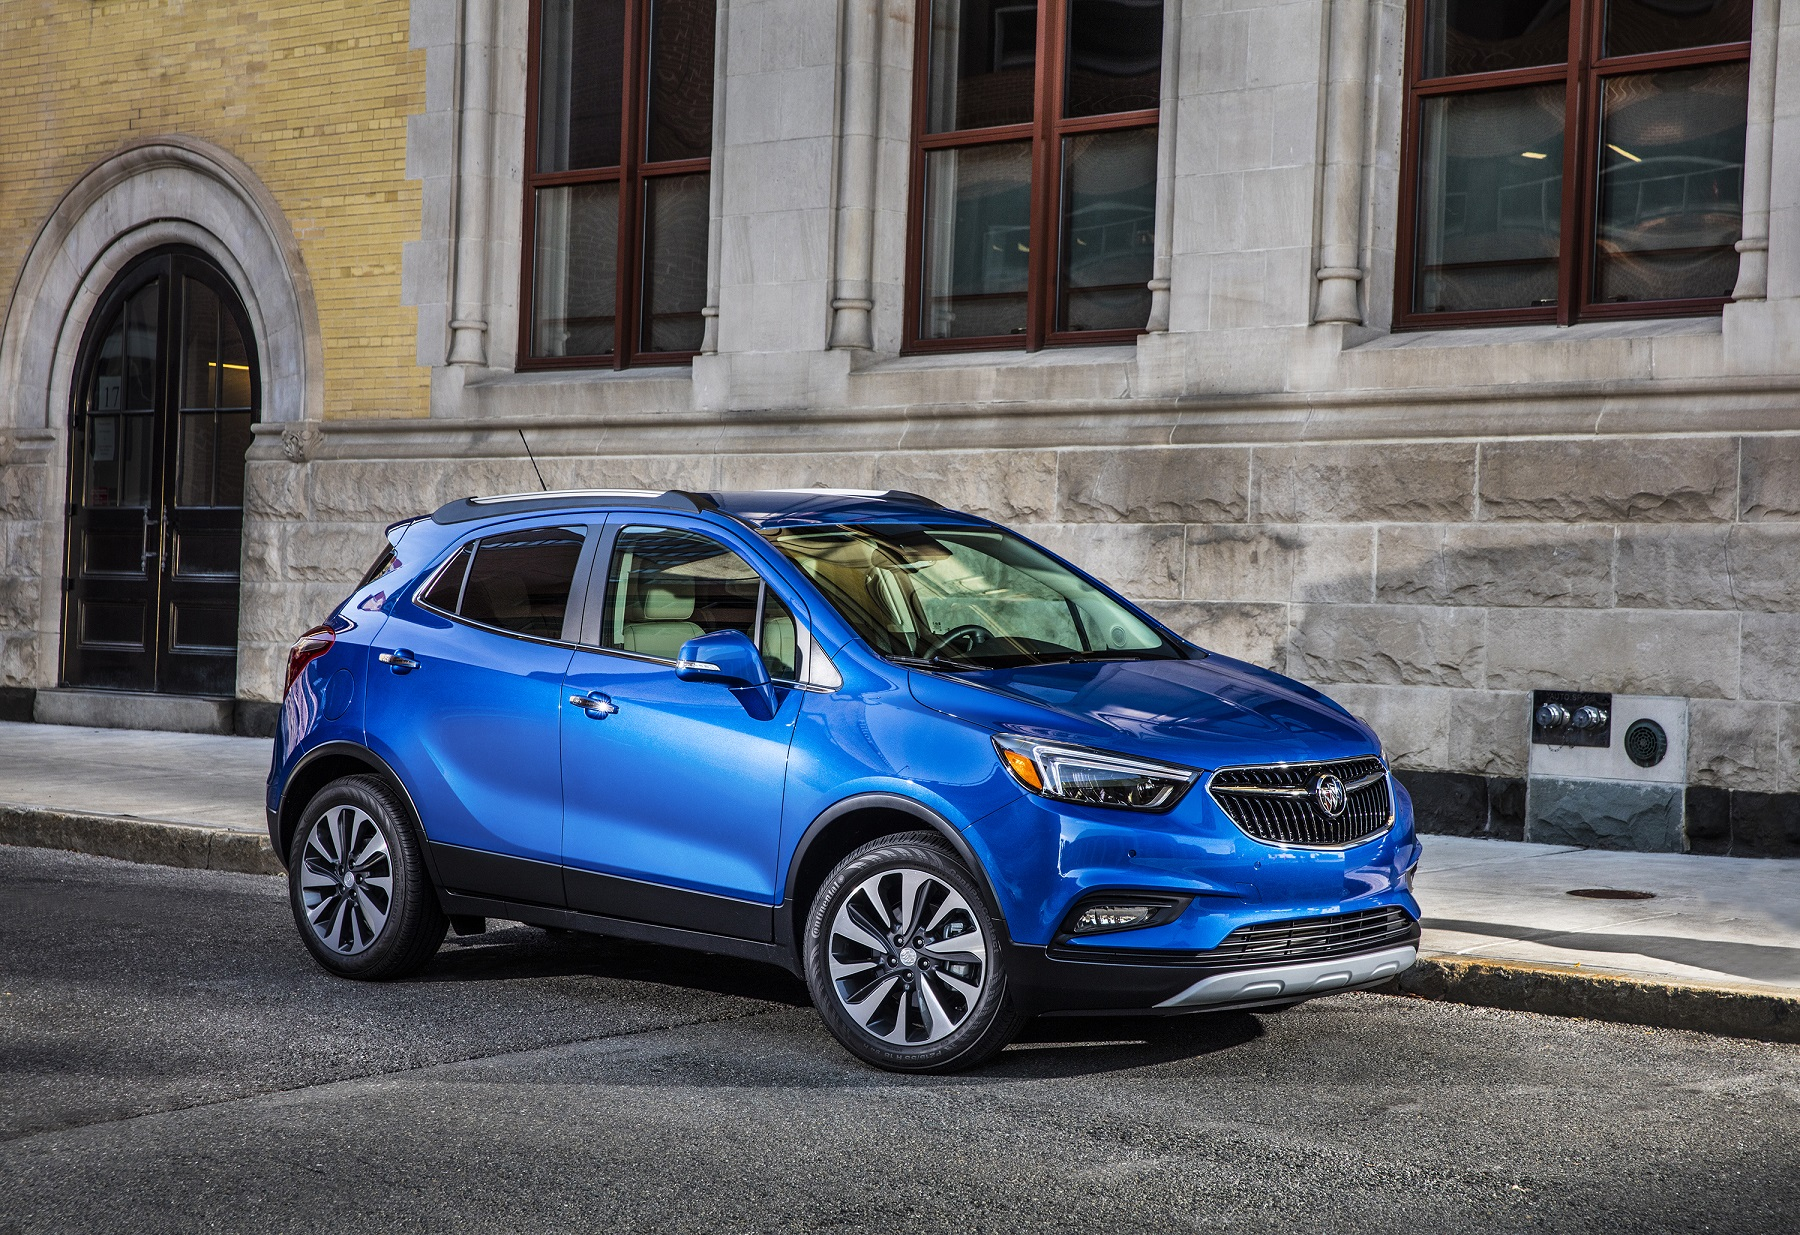 Manufacturer photo: Buick's new 2017 Encore strengthens the appeal of its small SUV with more refined styling and new connectivity technology